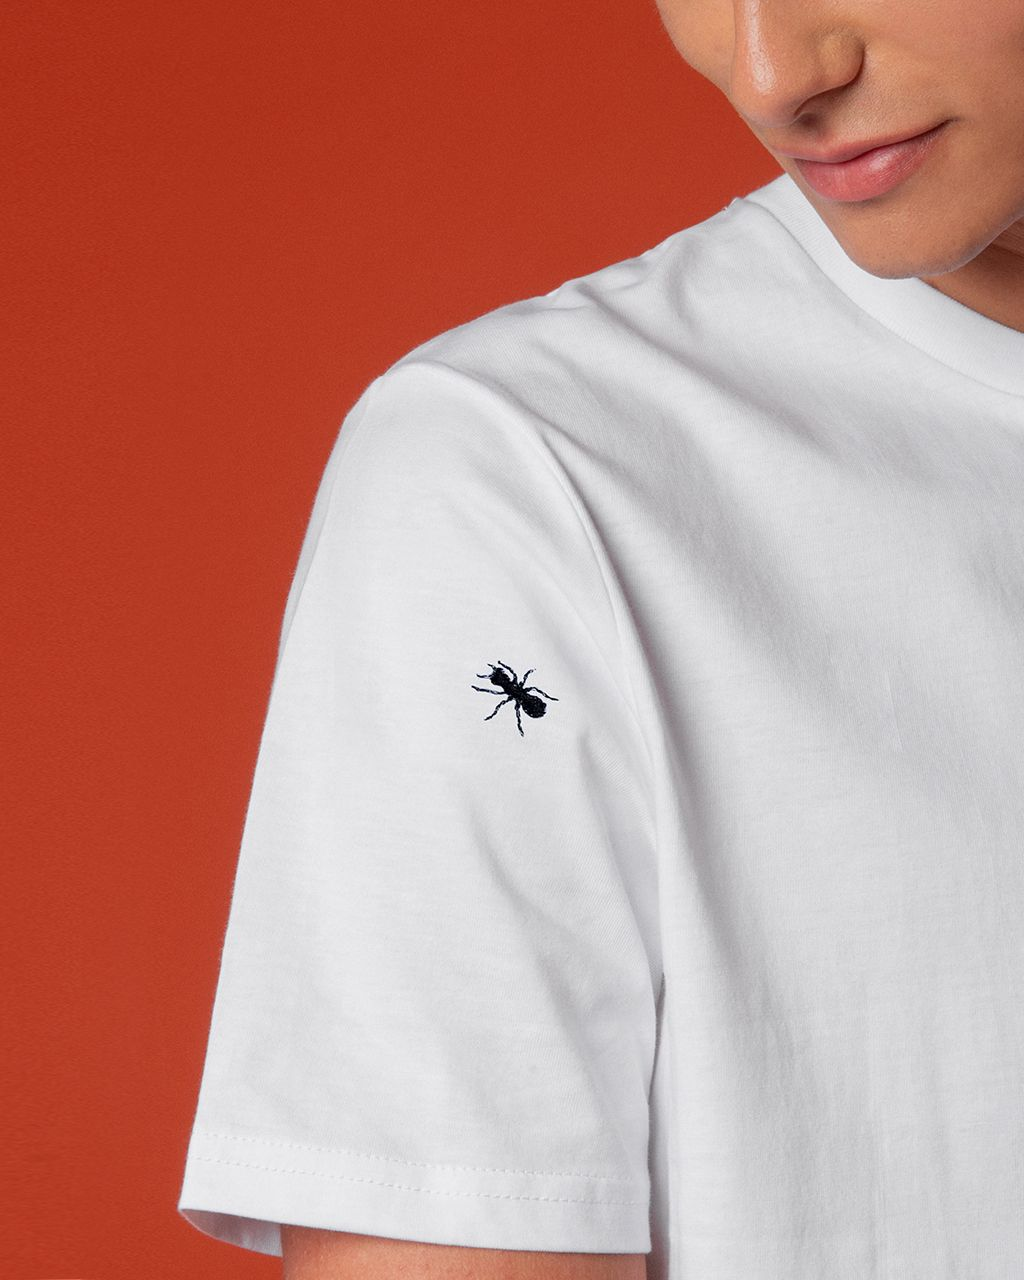 Ants Embroidered T-Shirt White Men